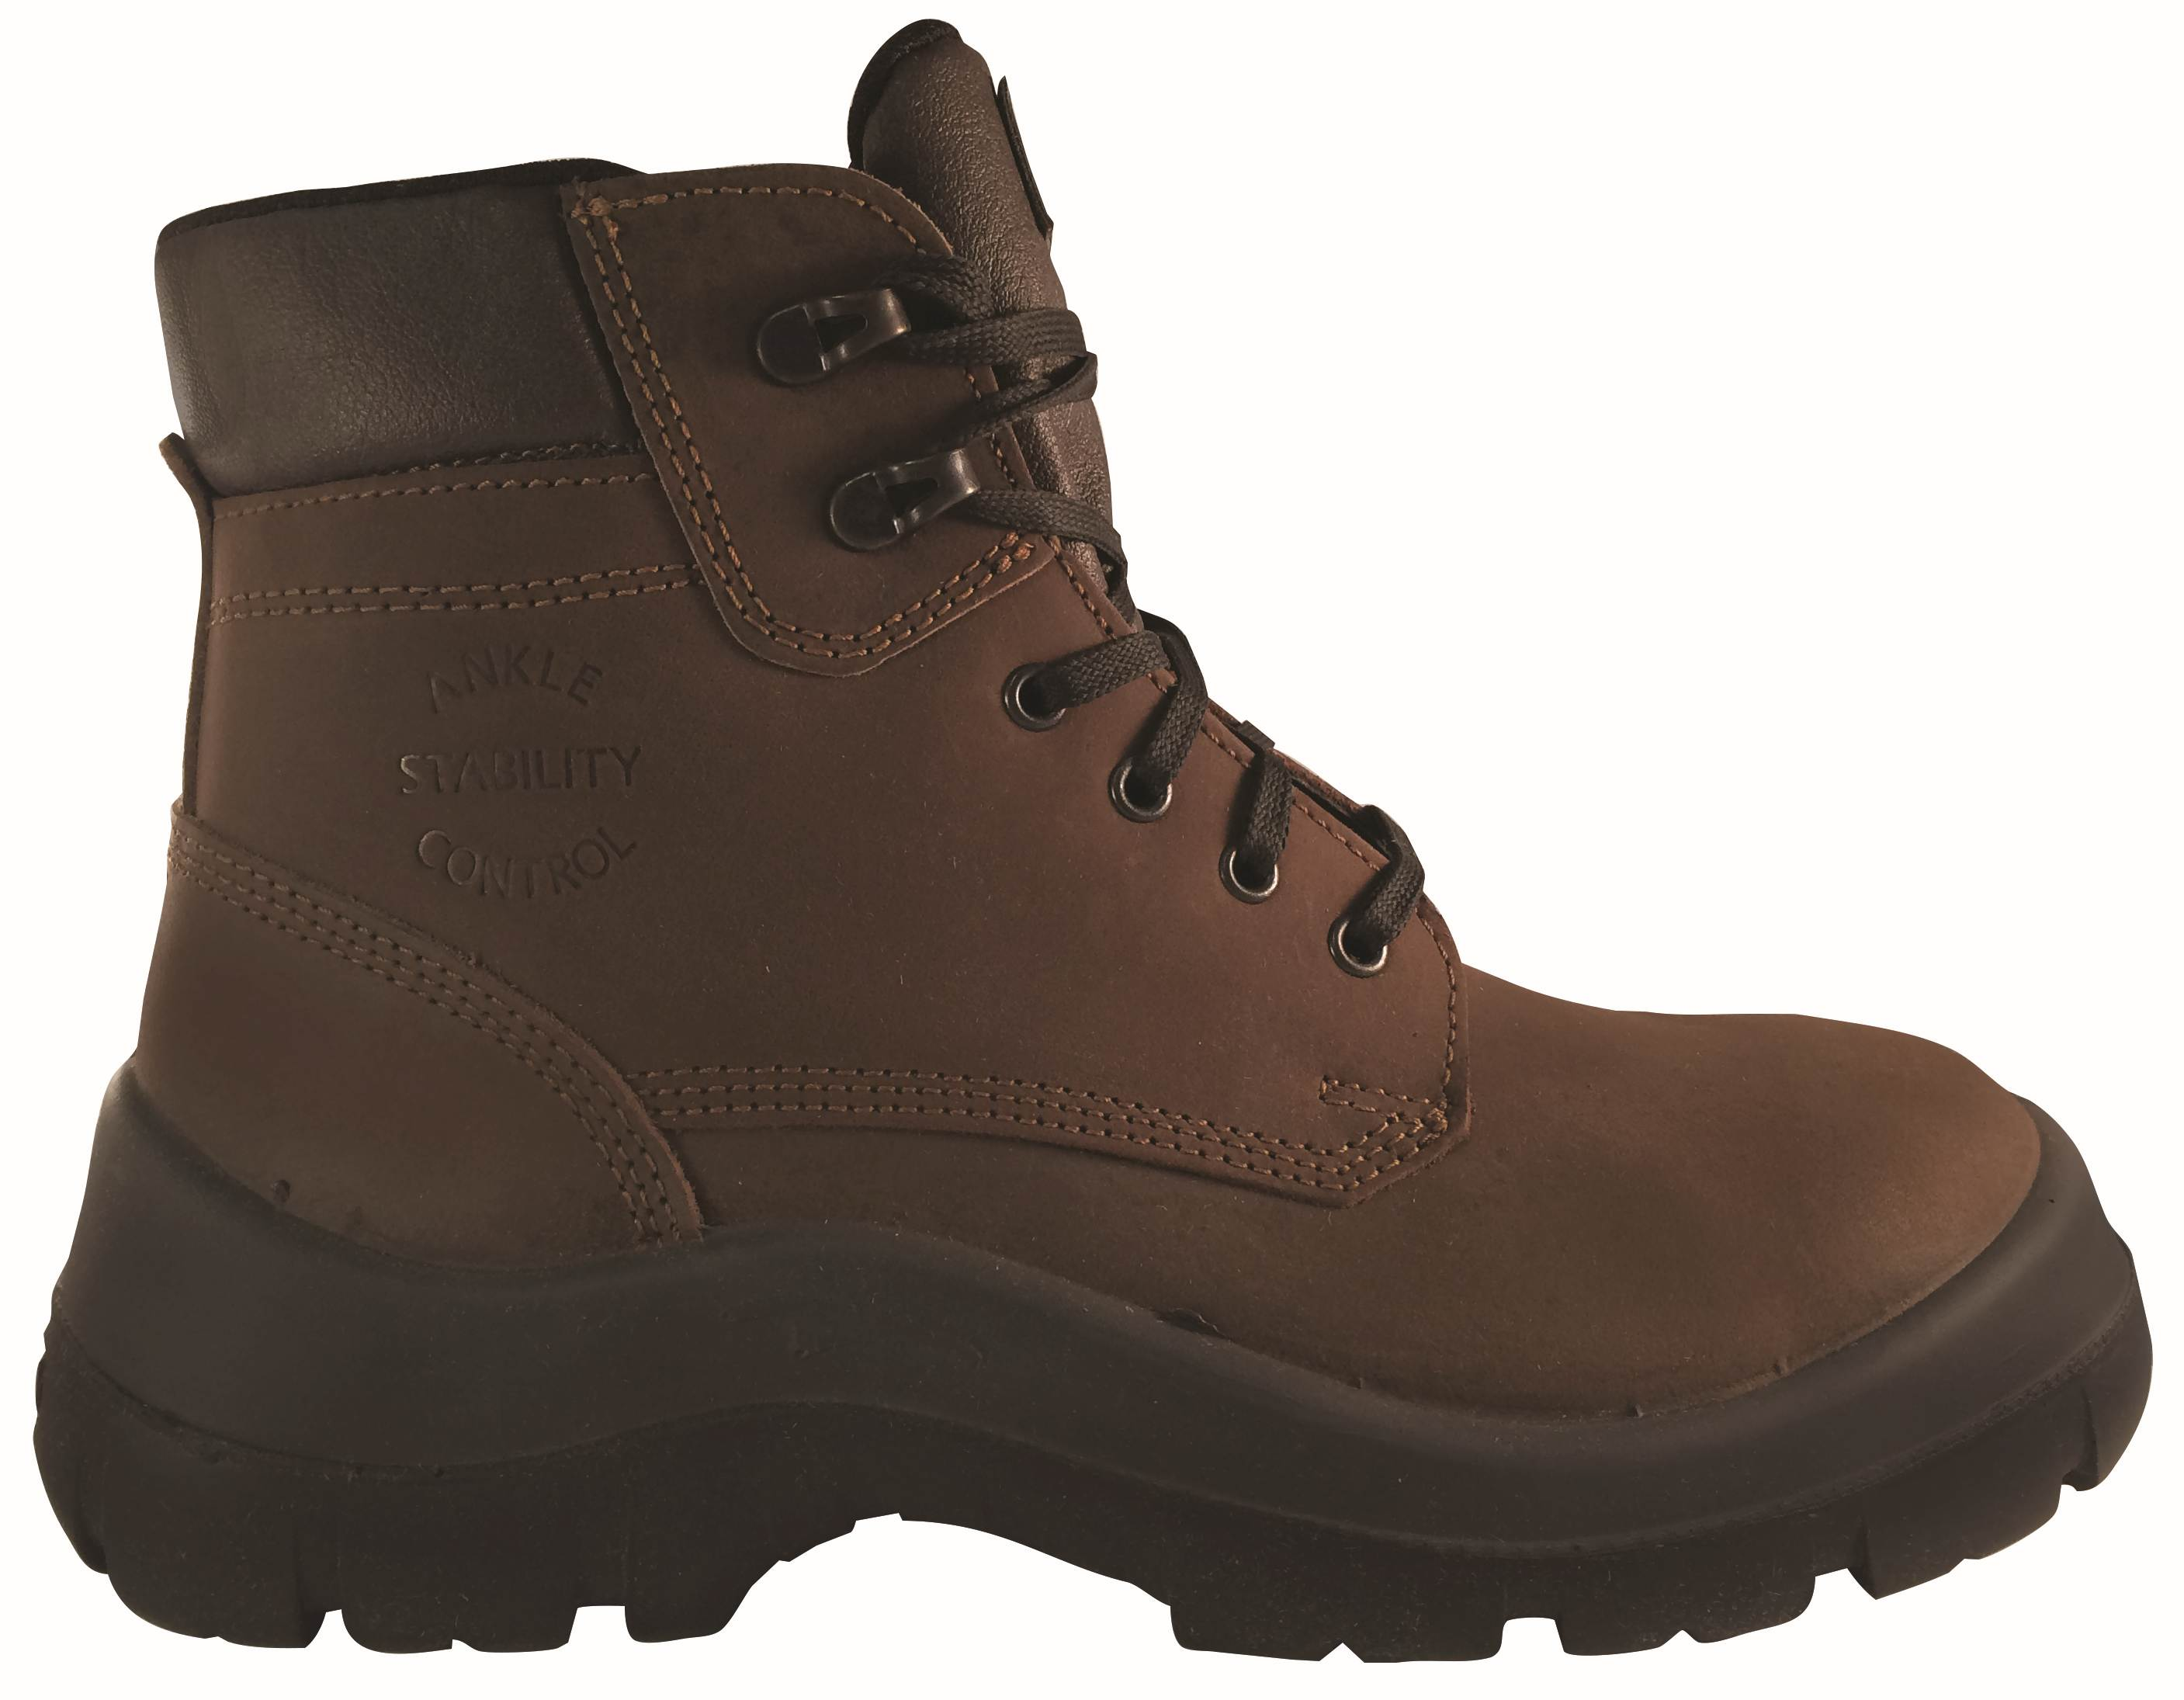 Honeywell Safety Boots Bac'Run Non-metallic Toe Cap Lightweight Bacou 783 S3